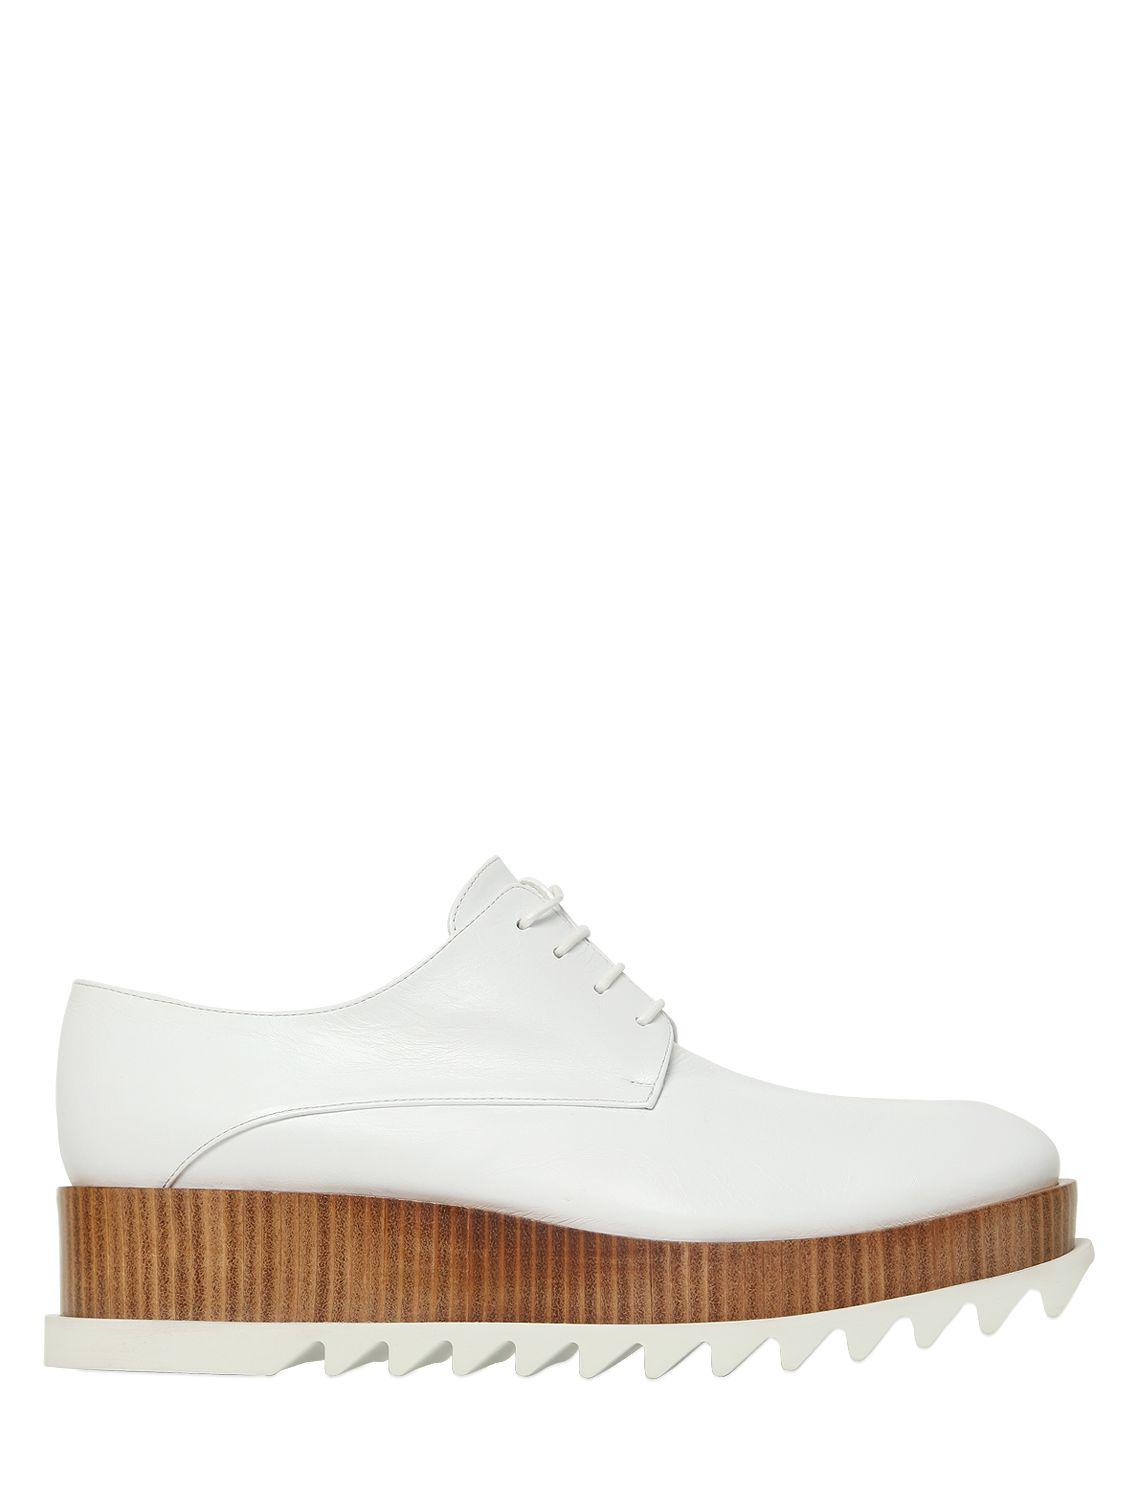 Jil Sander 50mm Leather Lace-Up Shoes White Women